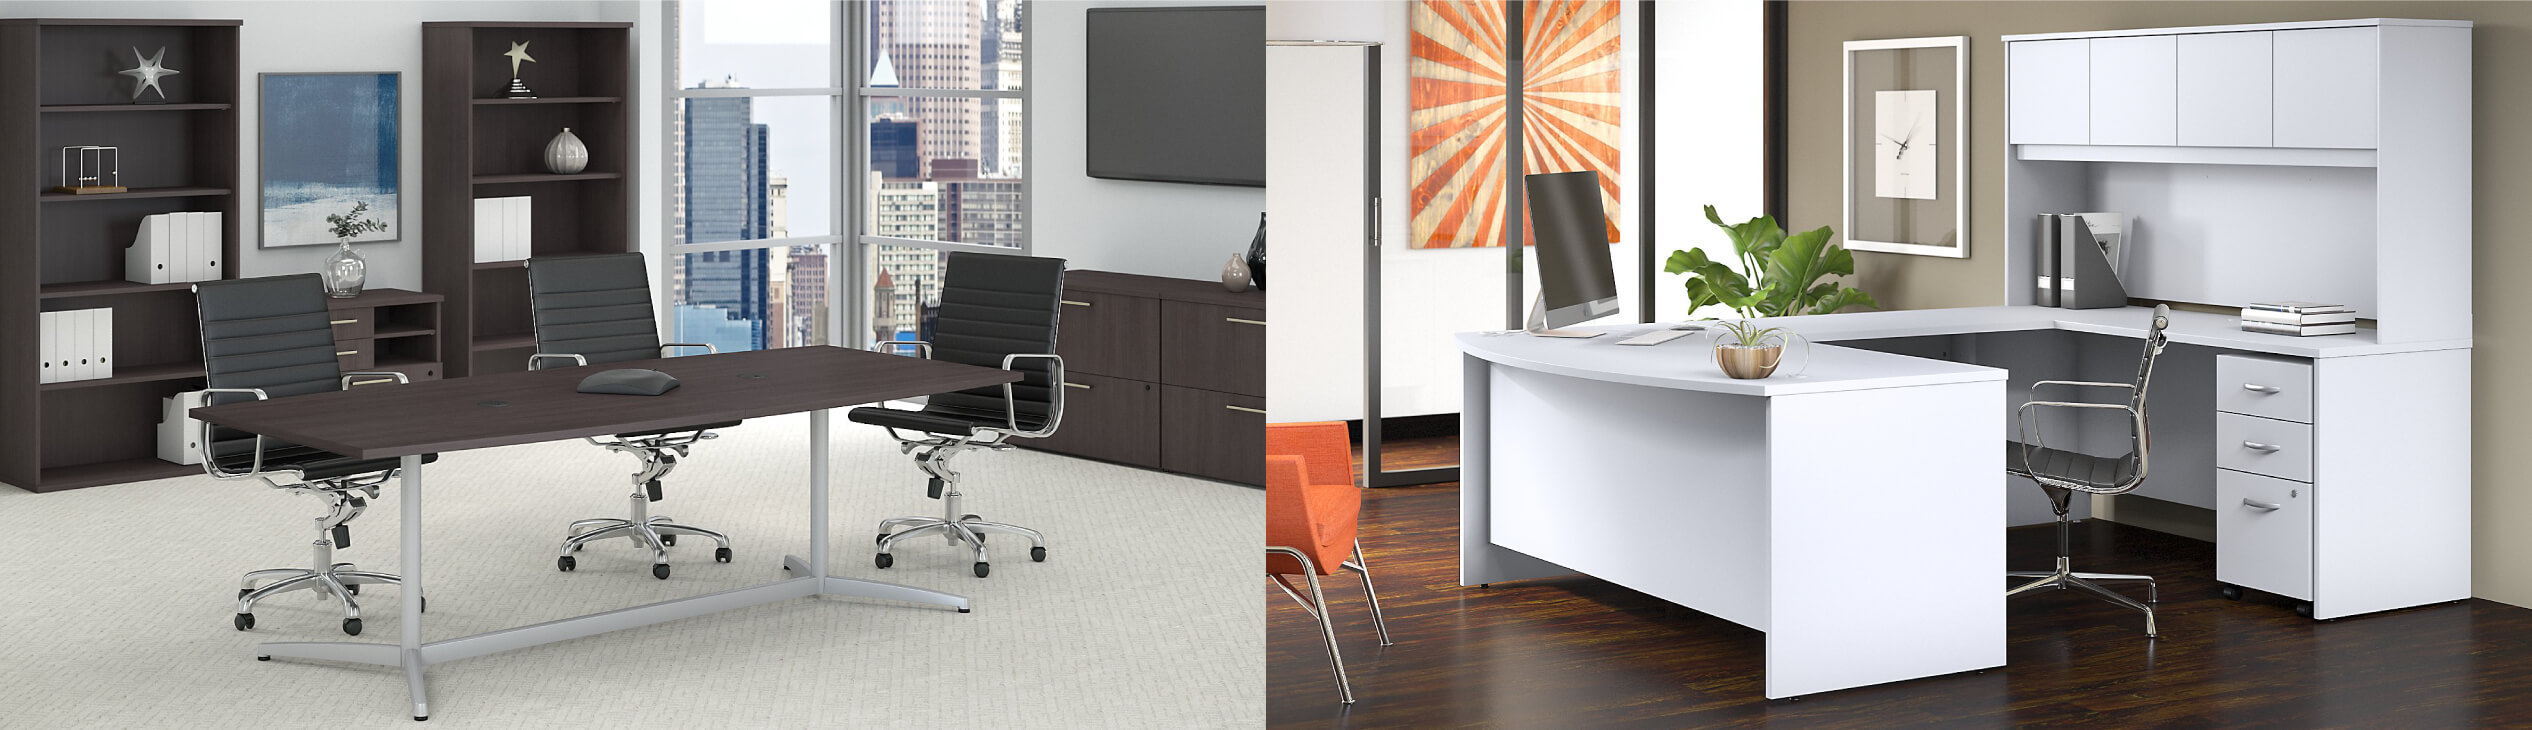 Home Ready2go Office Furniture, Ergonomic Office Chairs Indianapolis